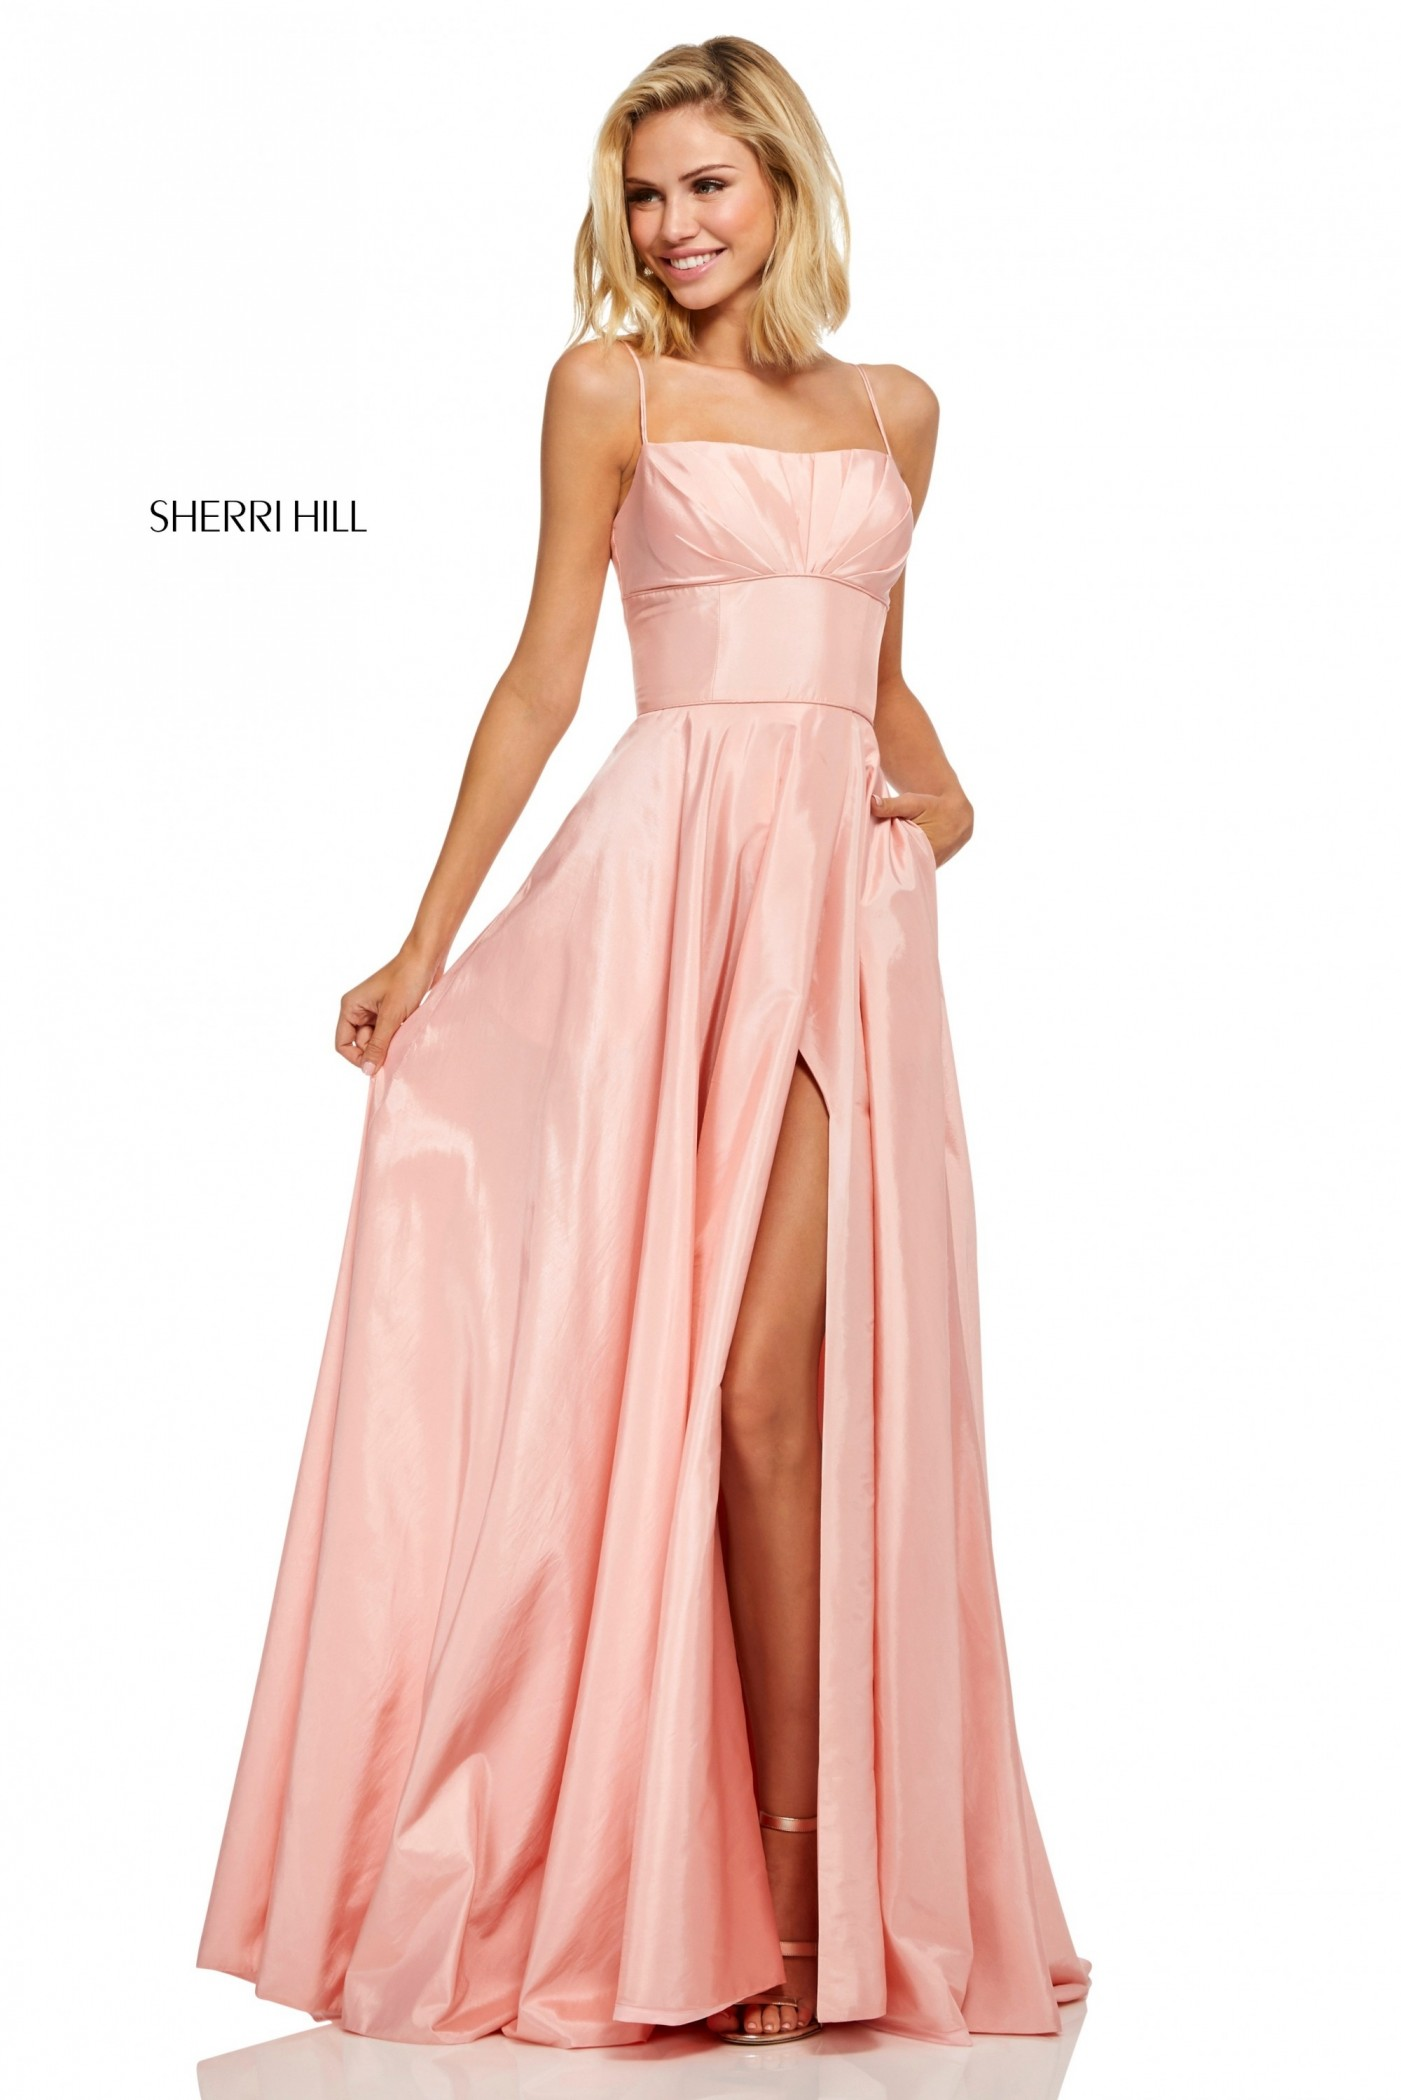 Sherri Hill 52602 A-Line Taffeta Evening Dress